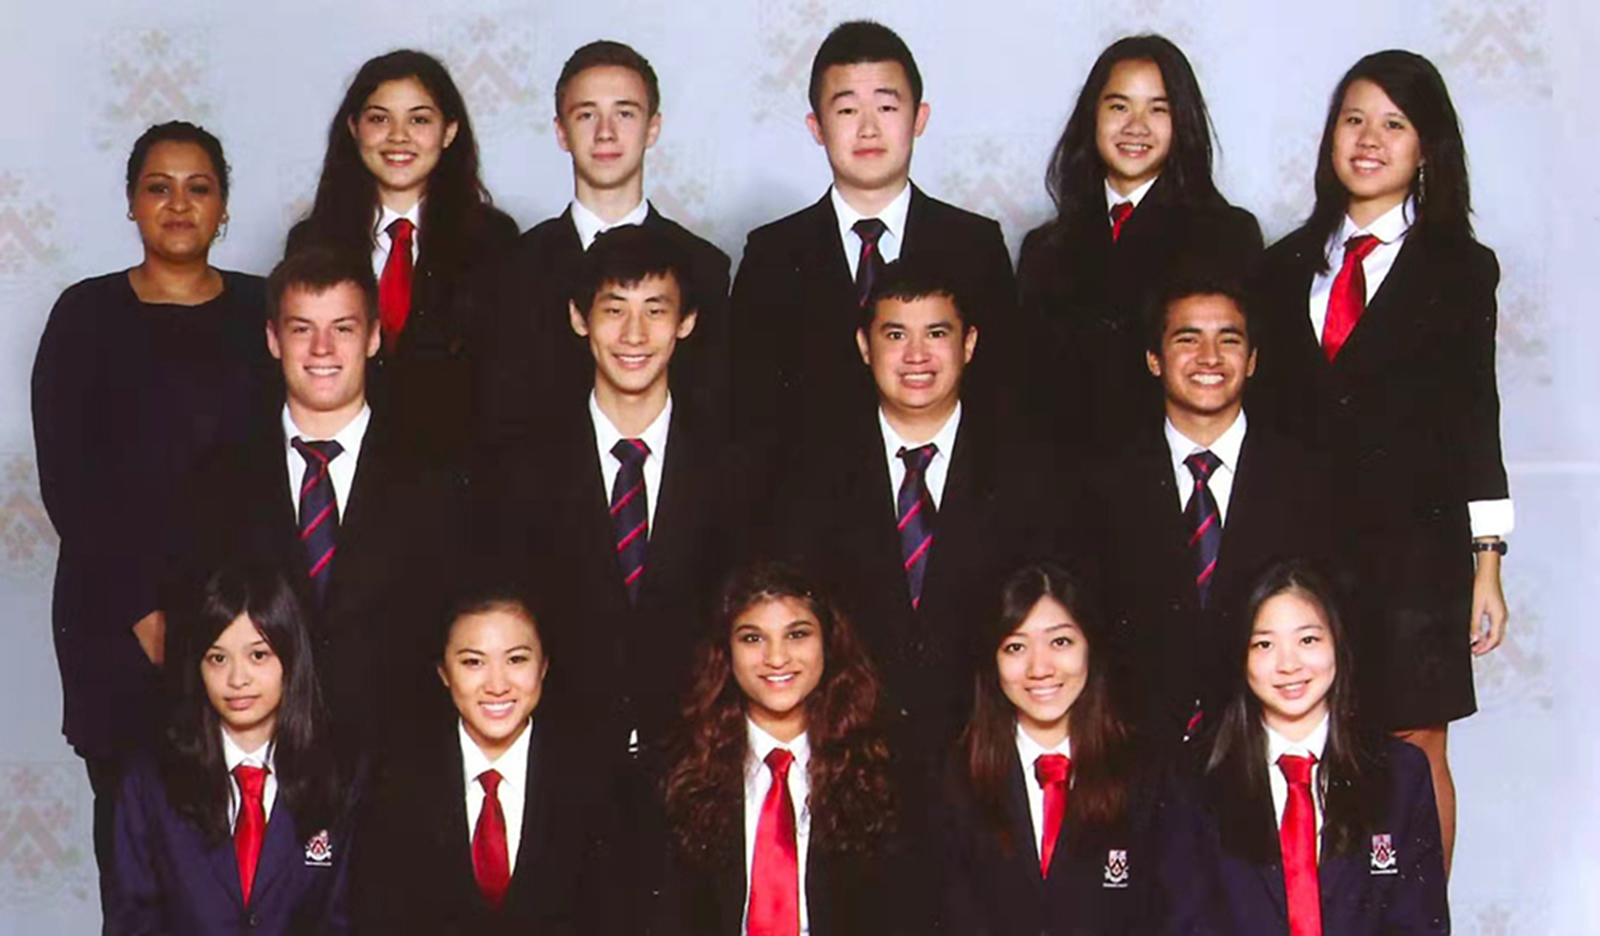 Monica's Year 13 class photo in Dulwich Pudong, 2013